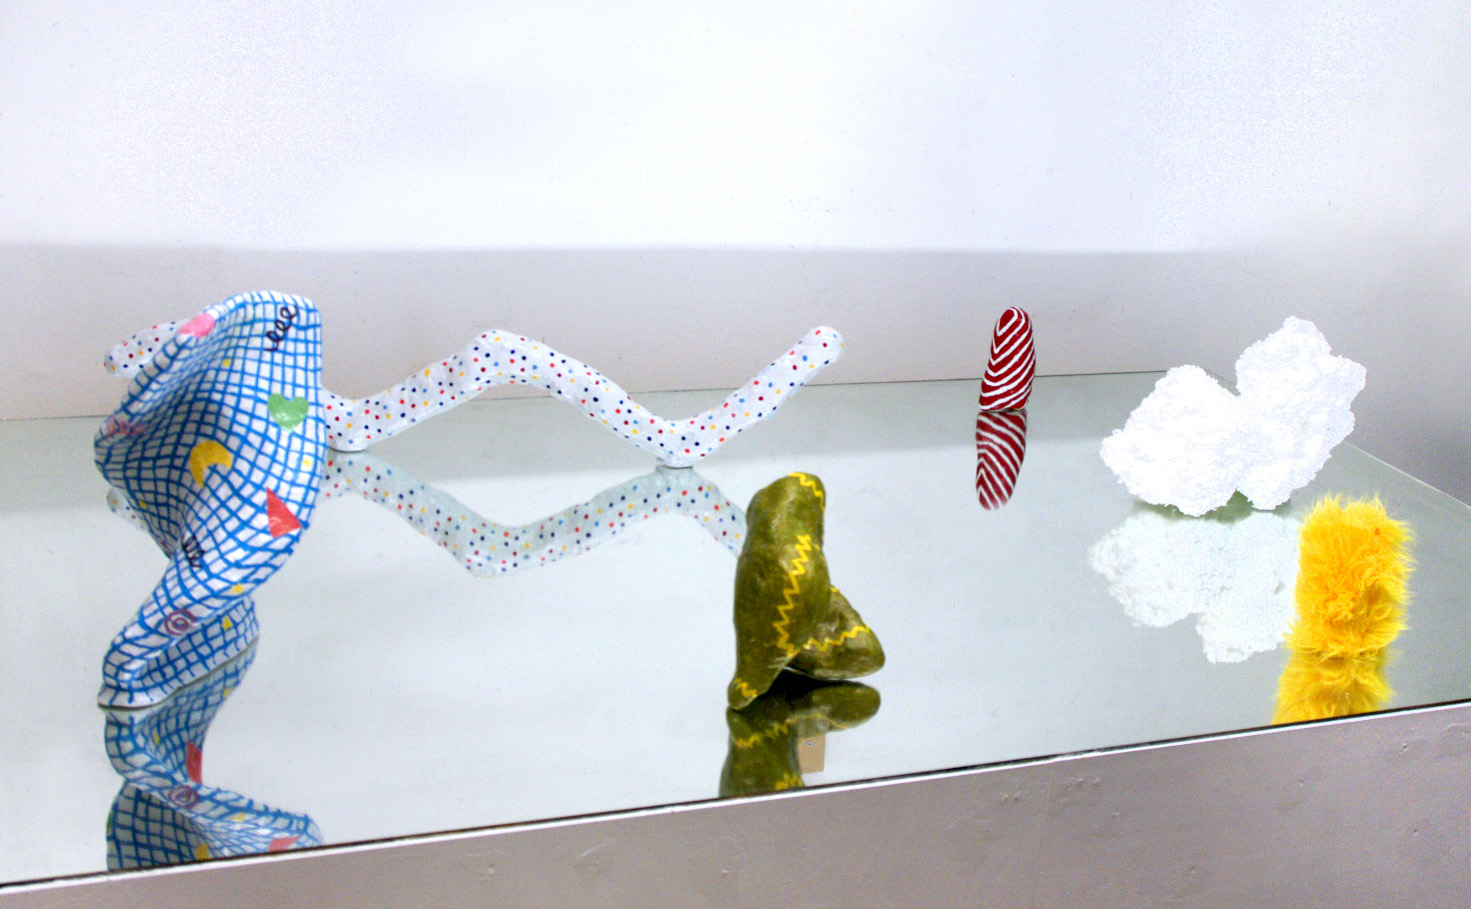 A group of 4 hydrocal sculptures, one styrofoam sculpture, and one yellow fur sculpture all on a mirror pedestal